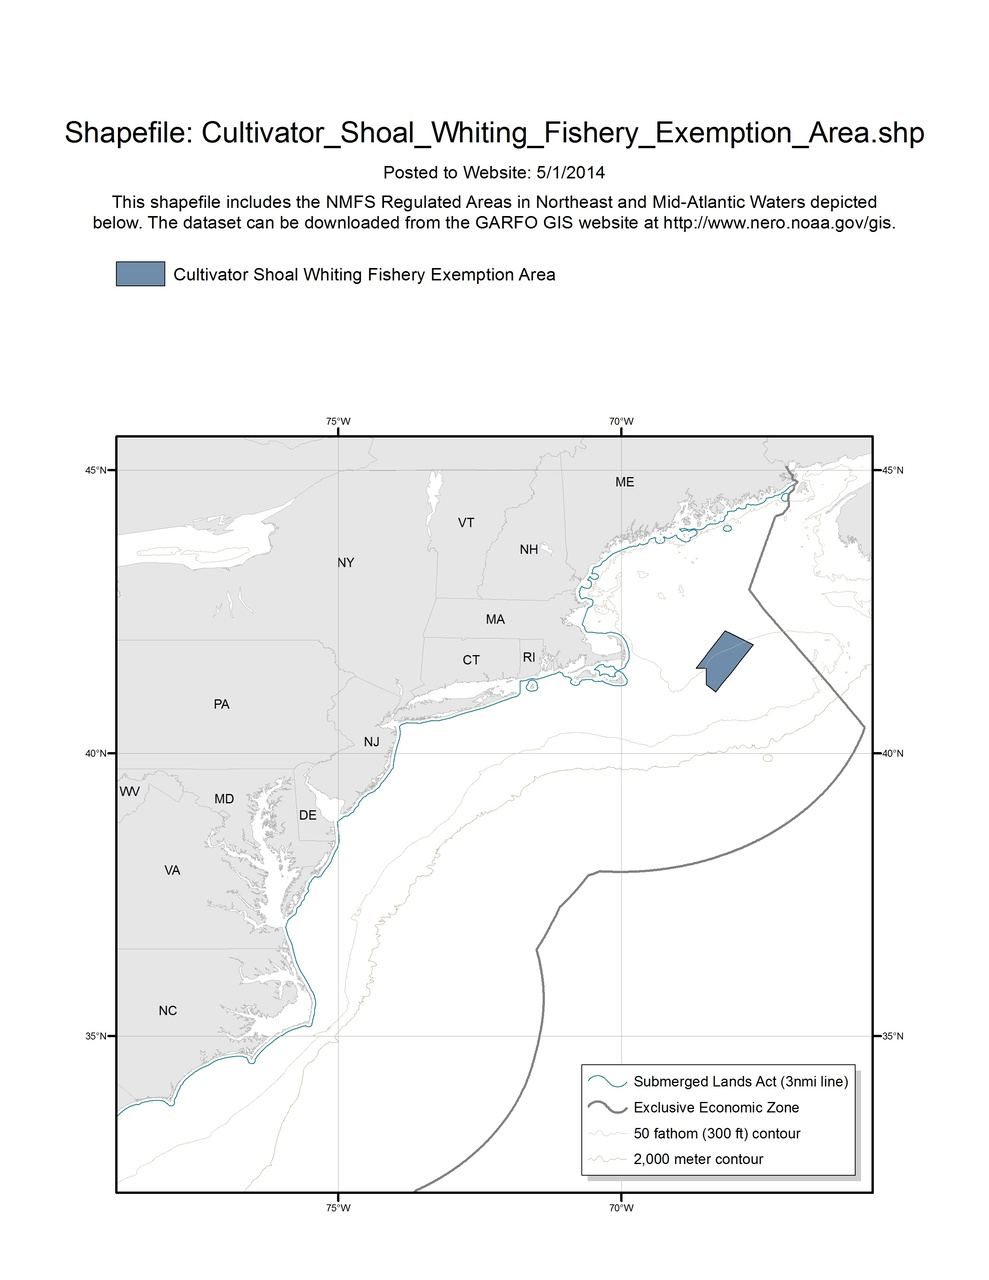 Cultivator_Shoal_Whiting_Fishery_Exemption_Area_MAP.jpg